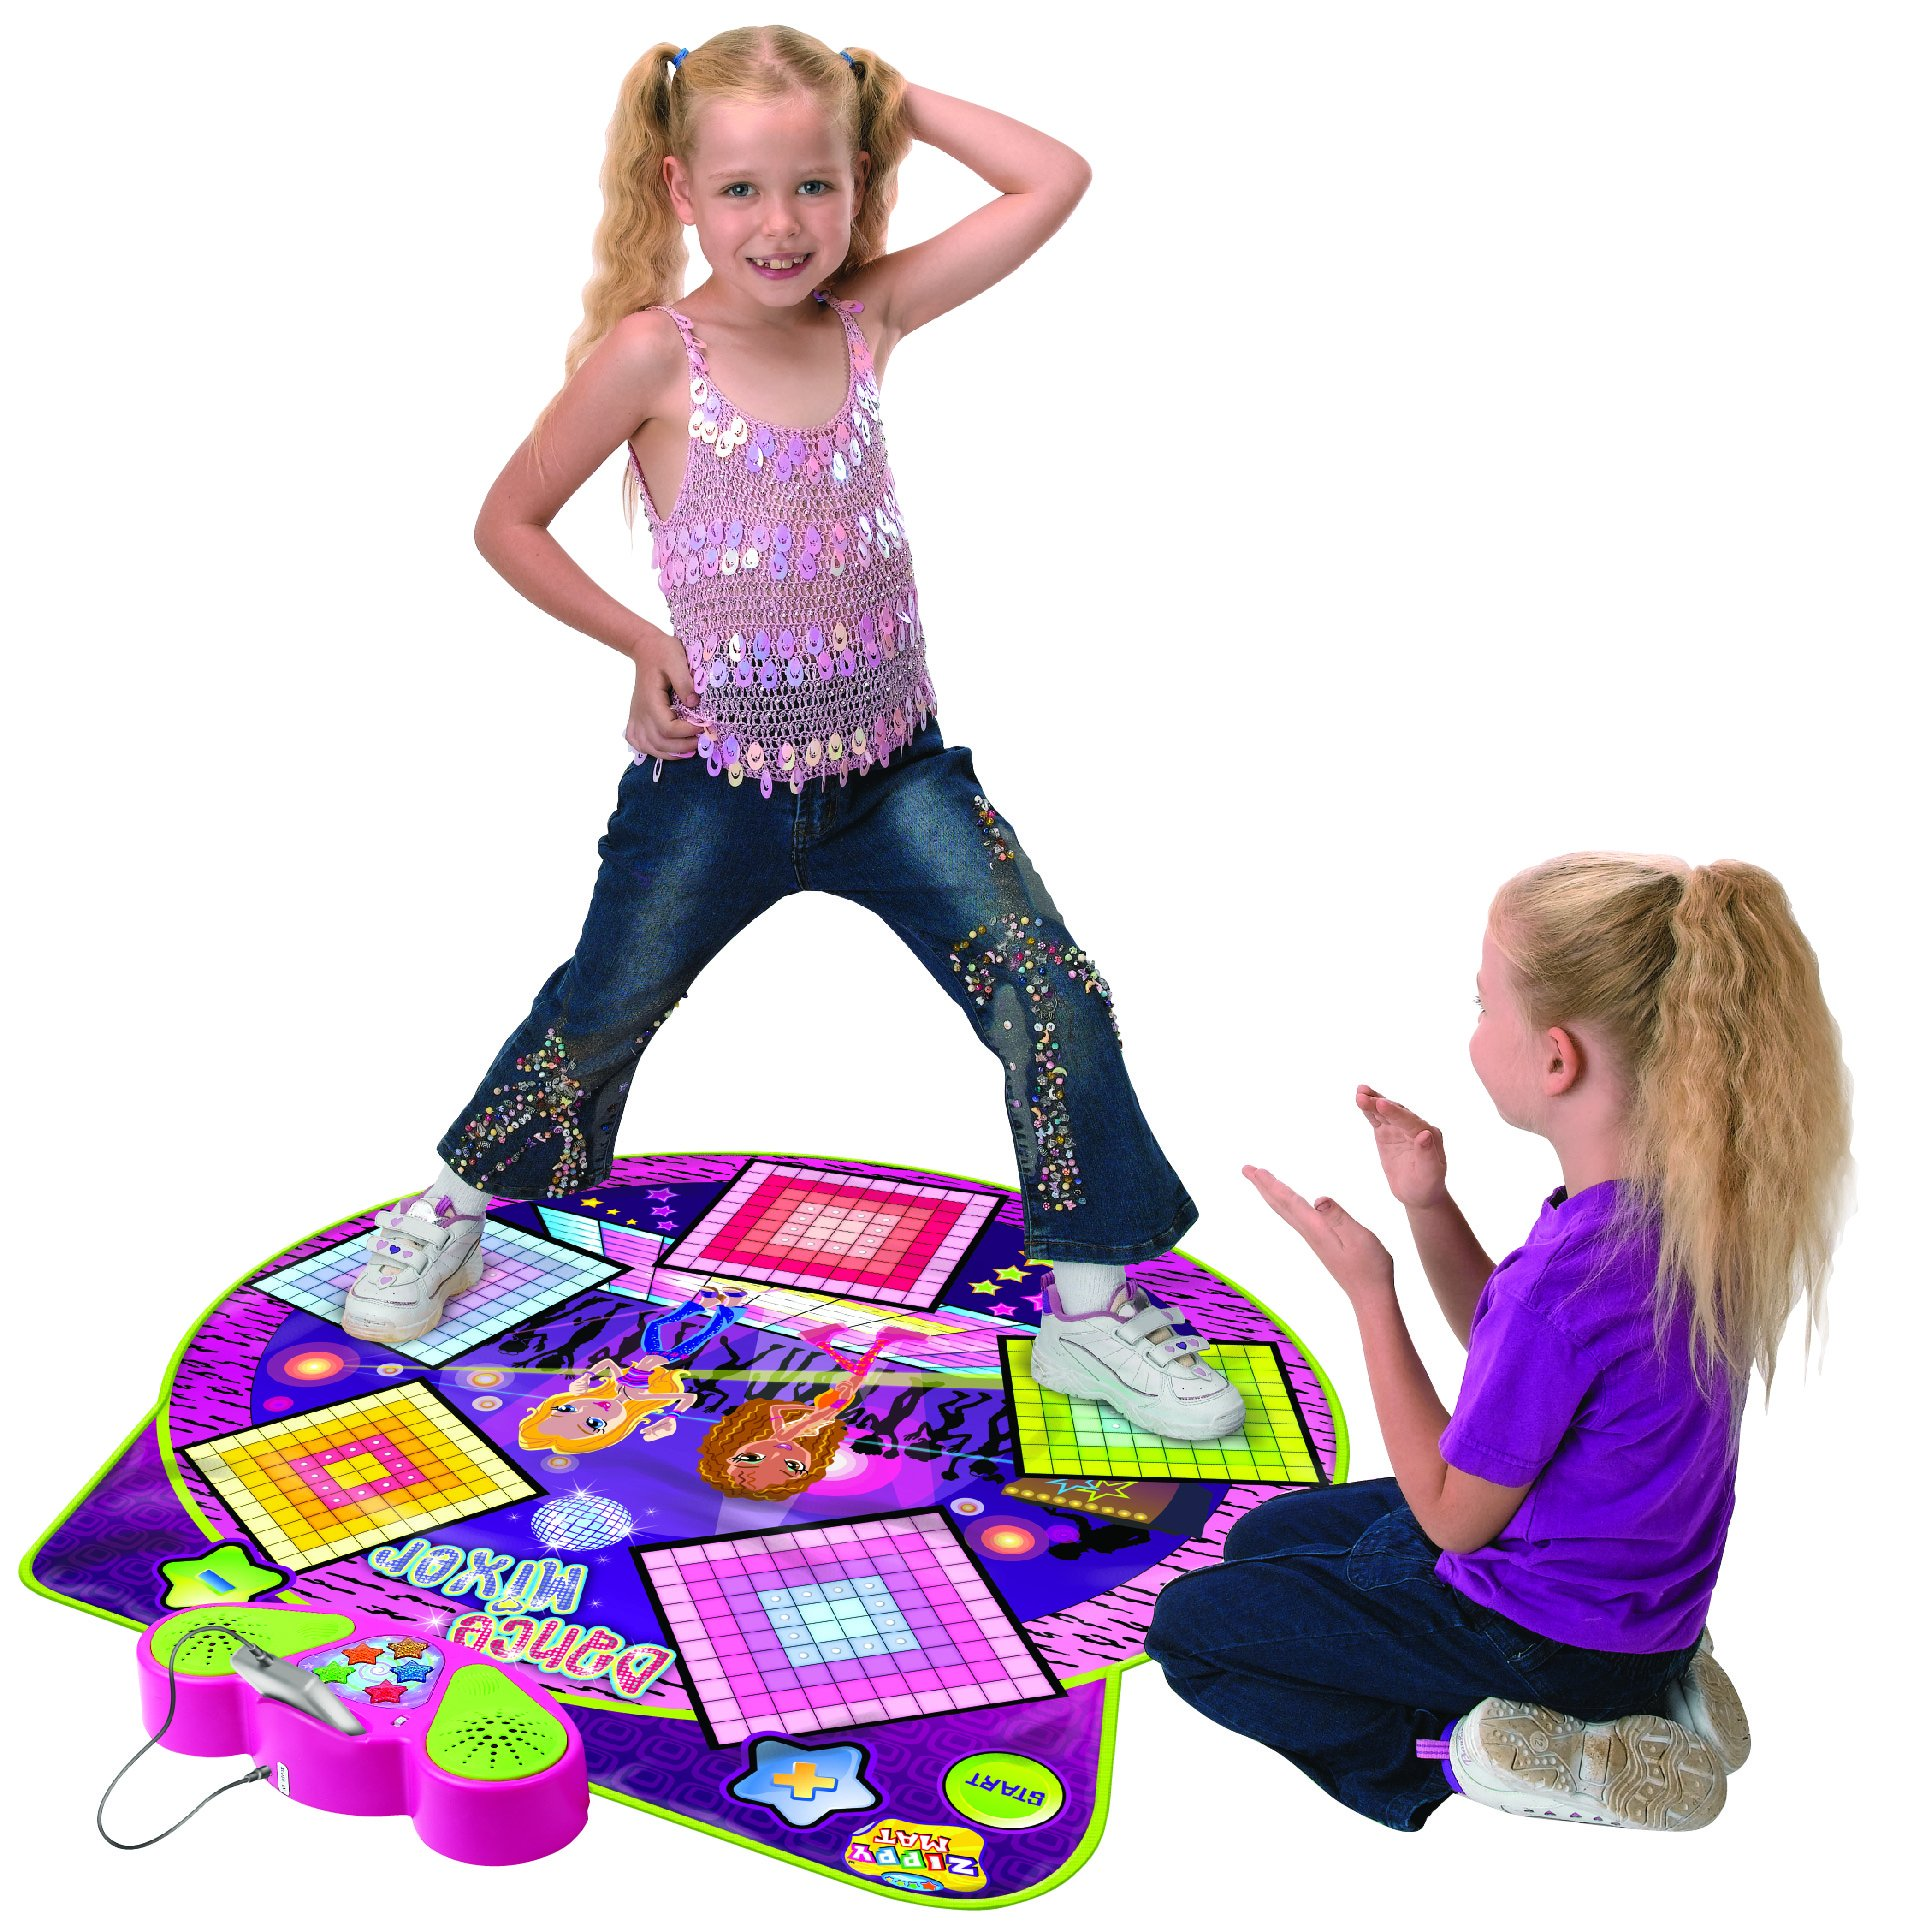 Playkids Kids@Play Dance Mat by Playkids (Image #2)